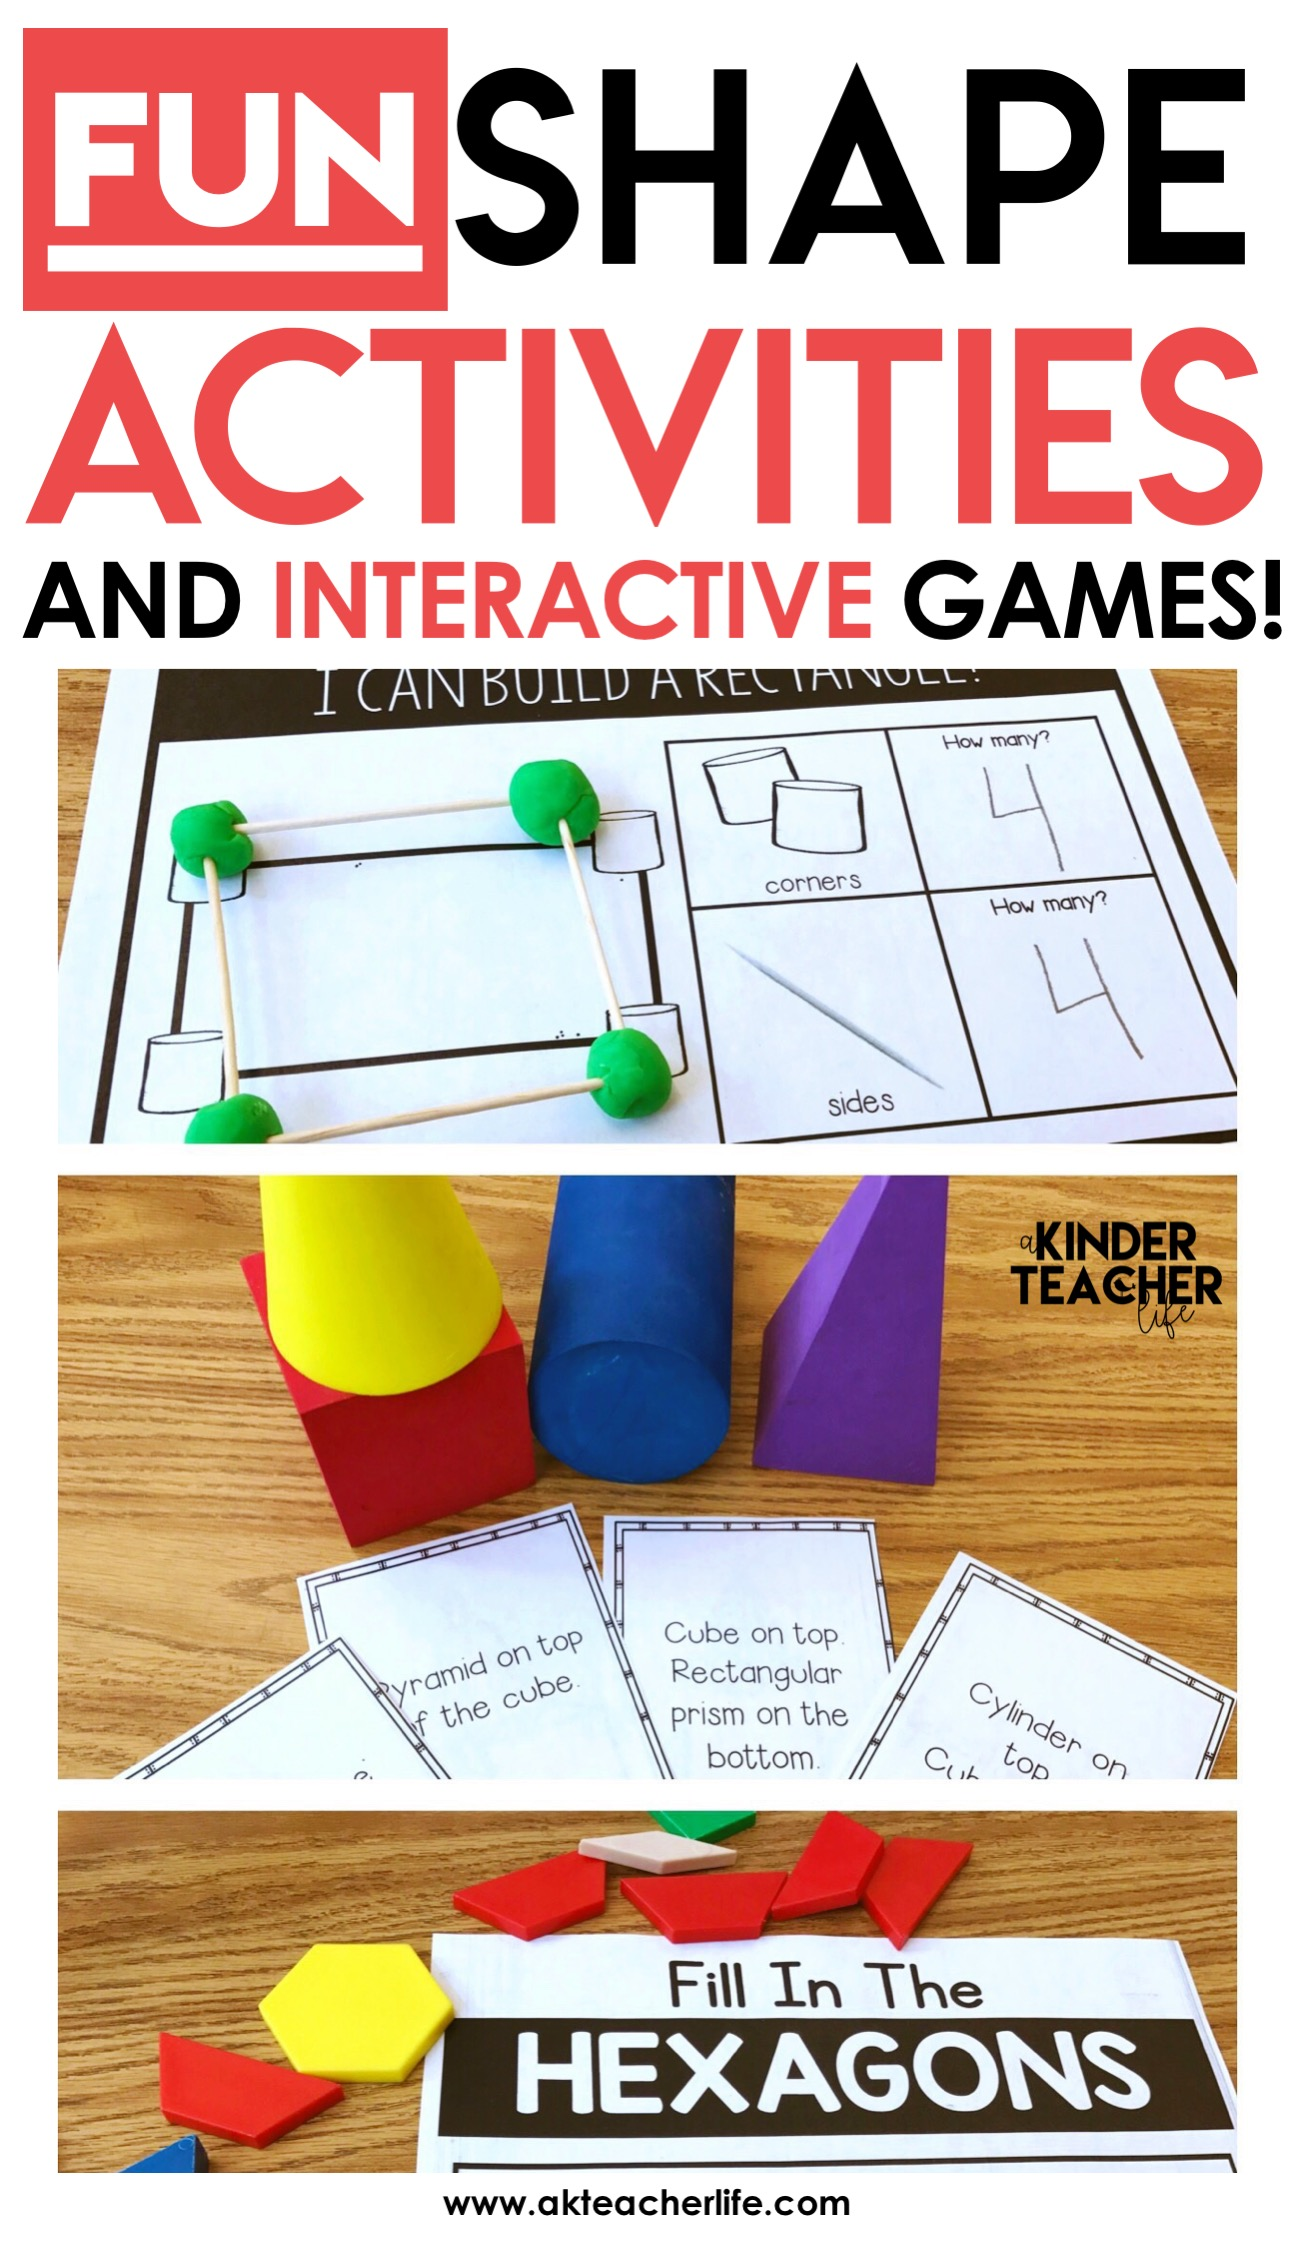 12 hands on shape activities a kinderteacher life. Black Bedroom Furniture Sets. Home Design Ideas